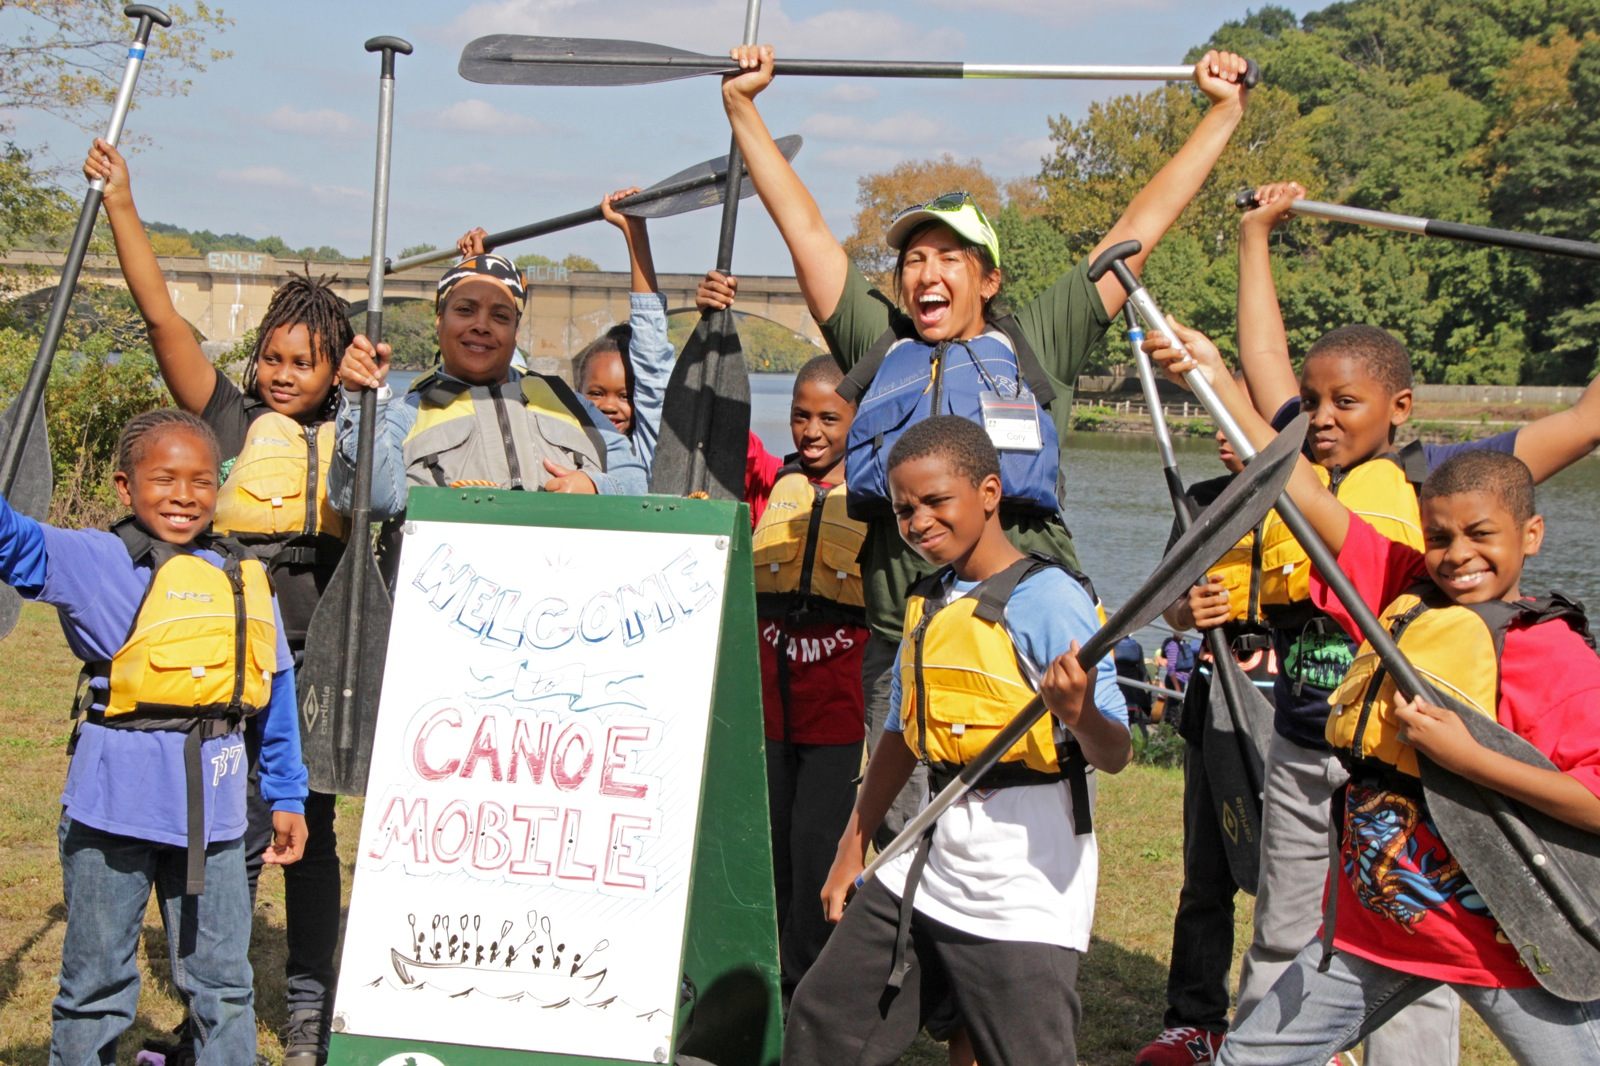 8 participants and a staff member pose with their paddles next to a Canoemobile sign